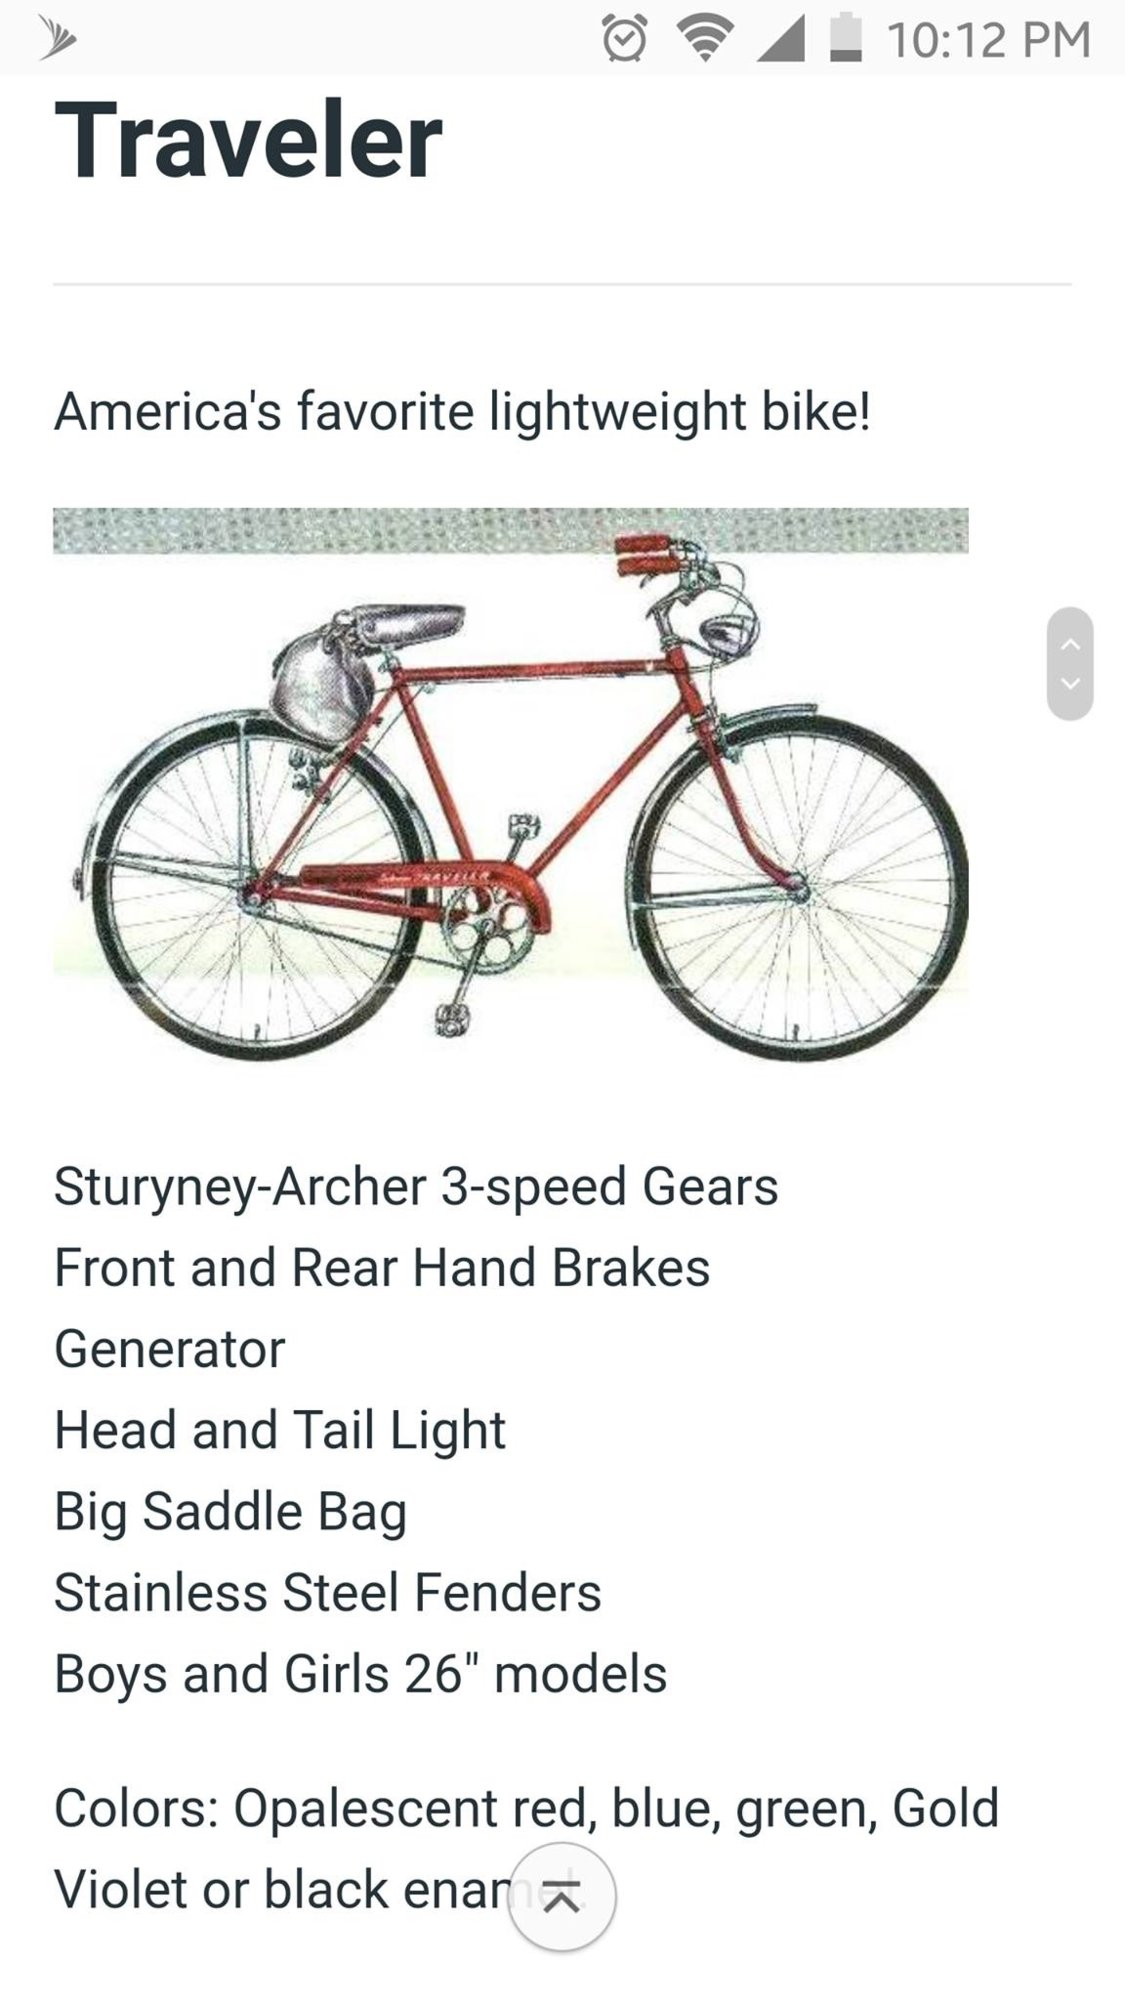 830c8ab51a1 1957 Schwinn Traveler color? | The Classic and Antique Bicycle Exchange